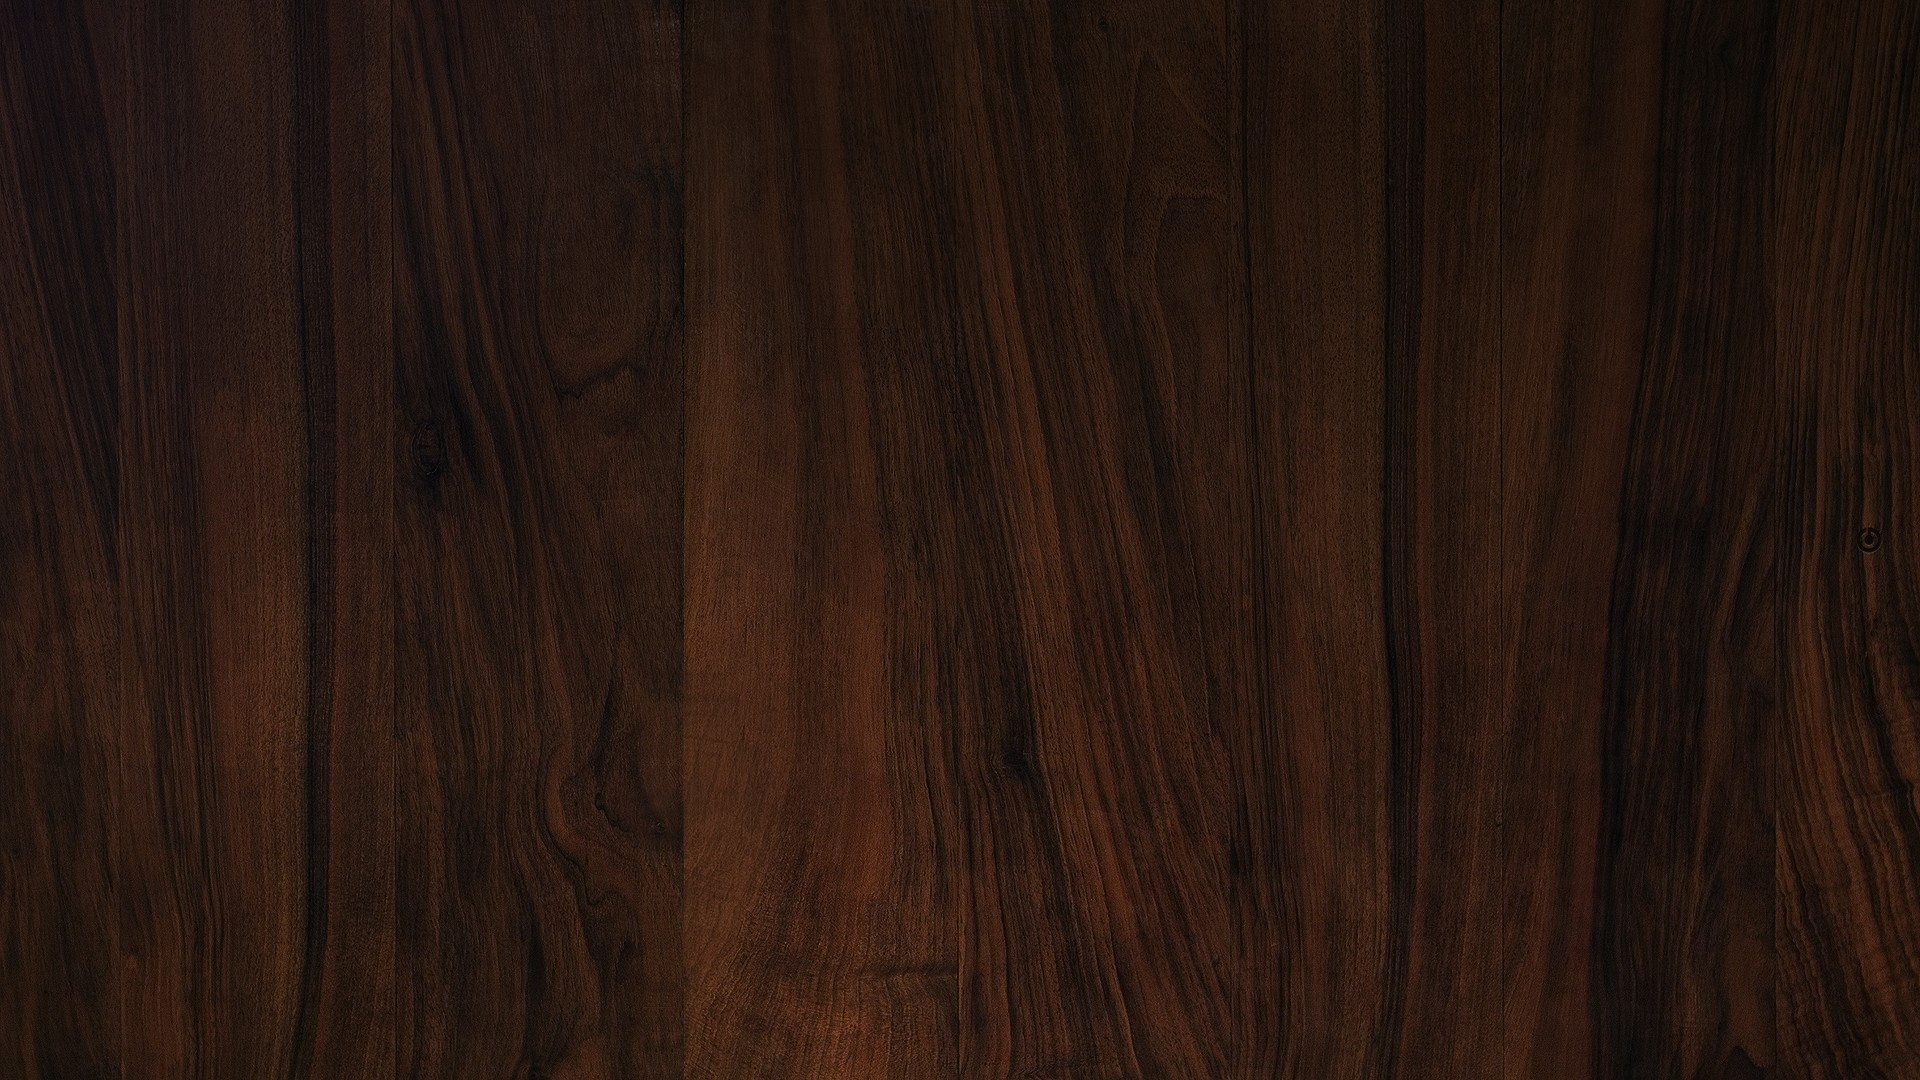 Wood Texture Background Download Free Full Hd Wallpapers